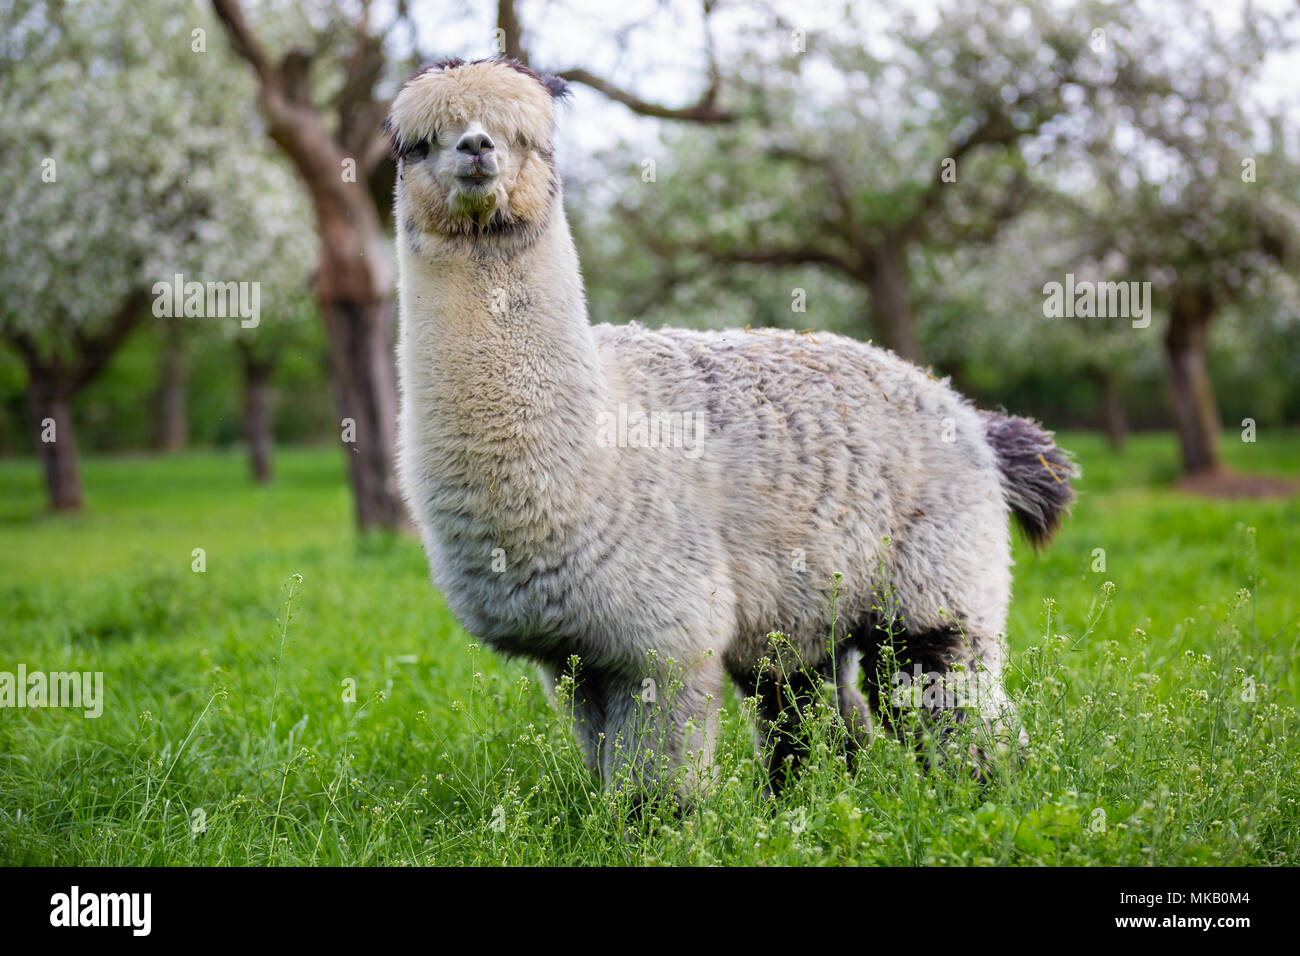 Adult Alpaca in the bosom of nature, South American mammal - Stock Image